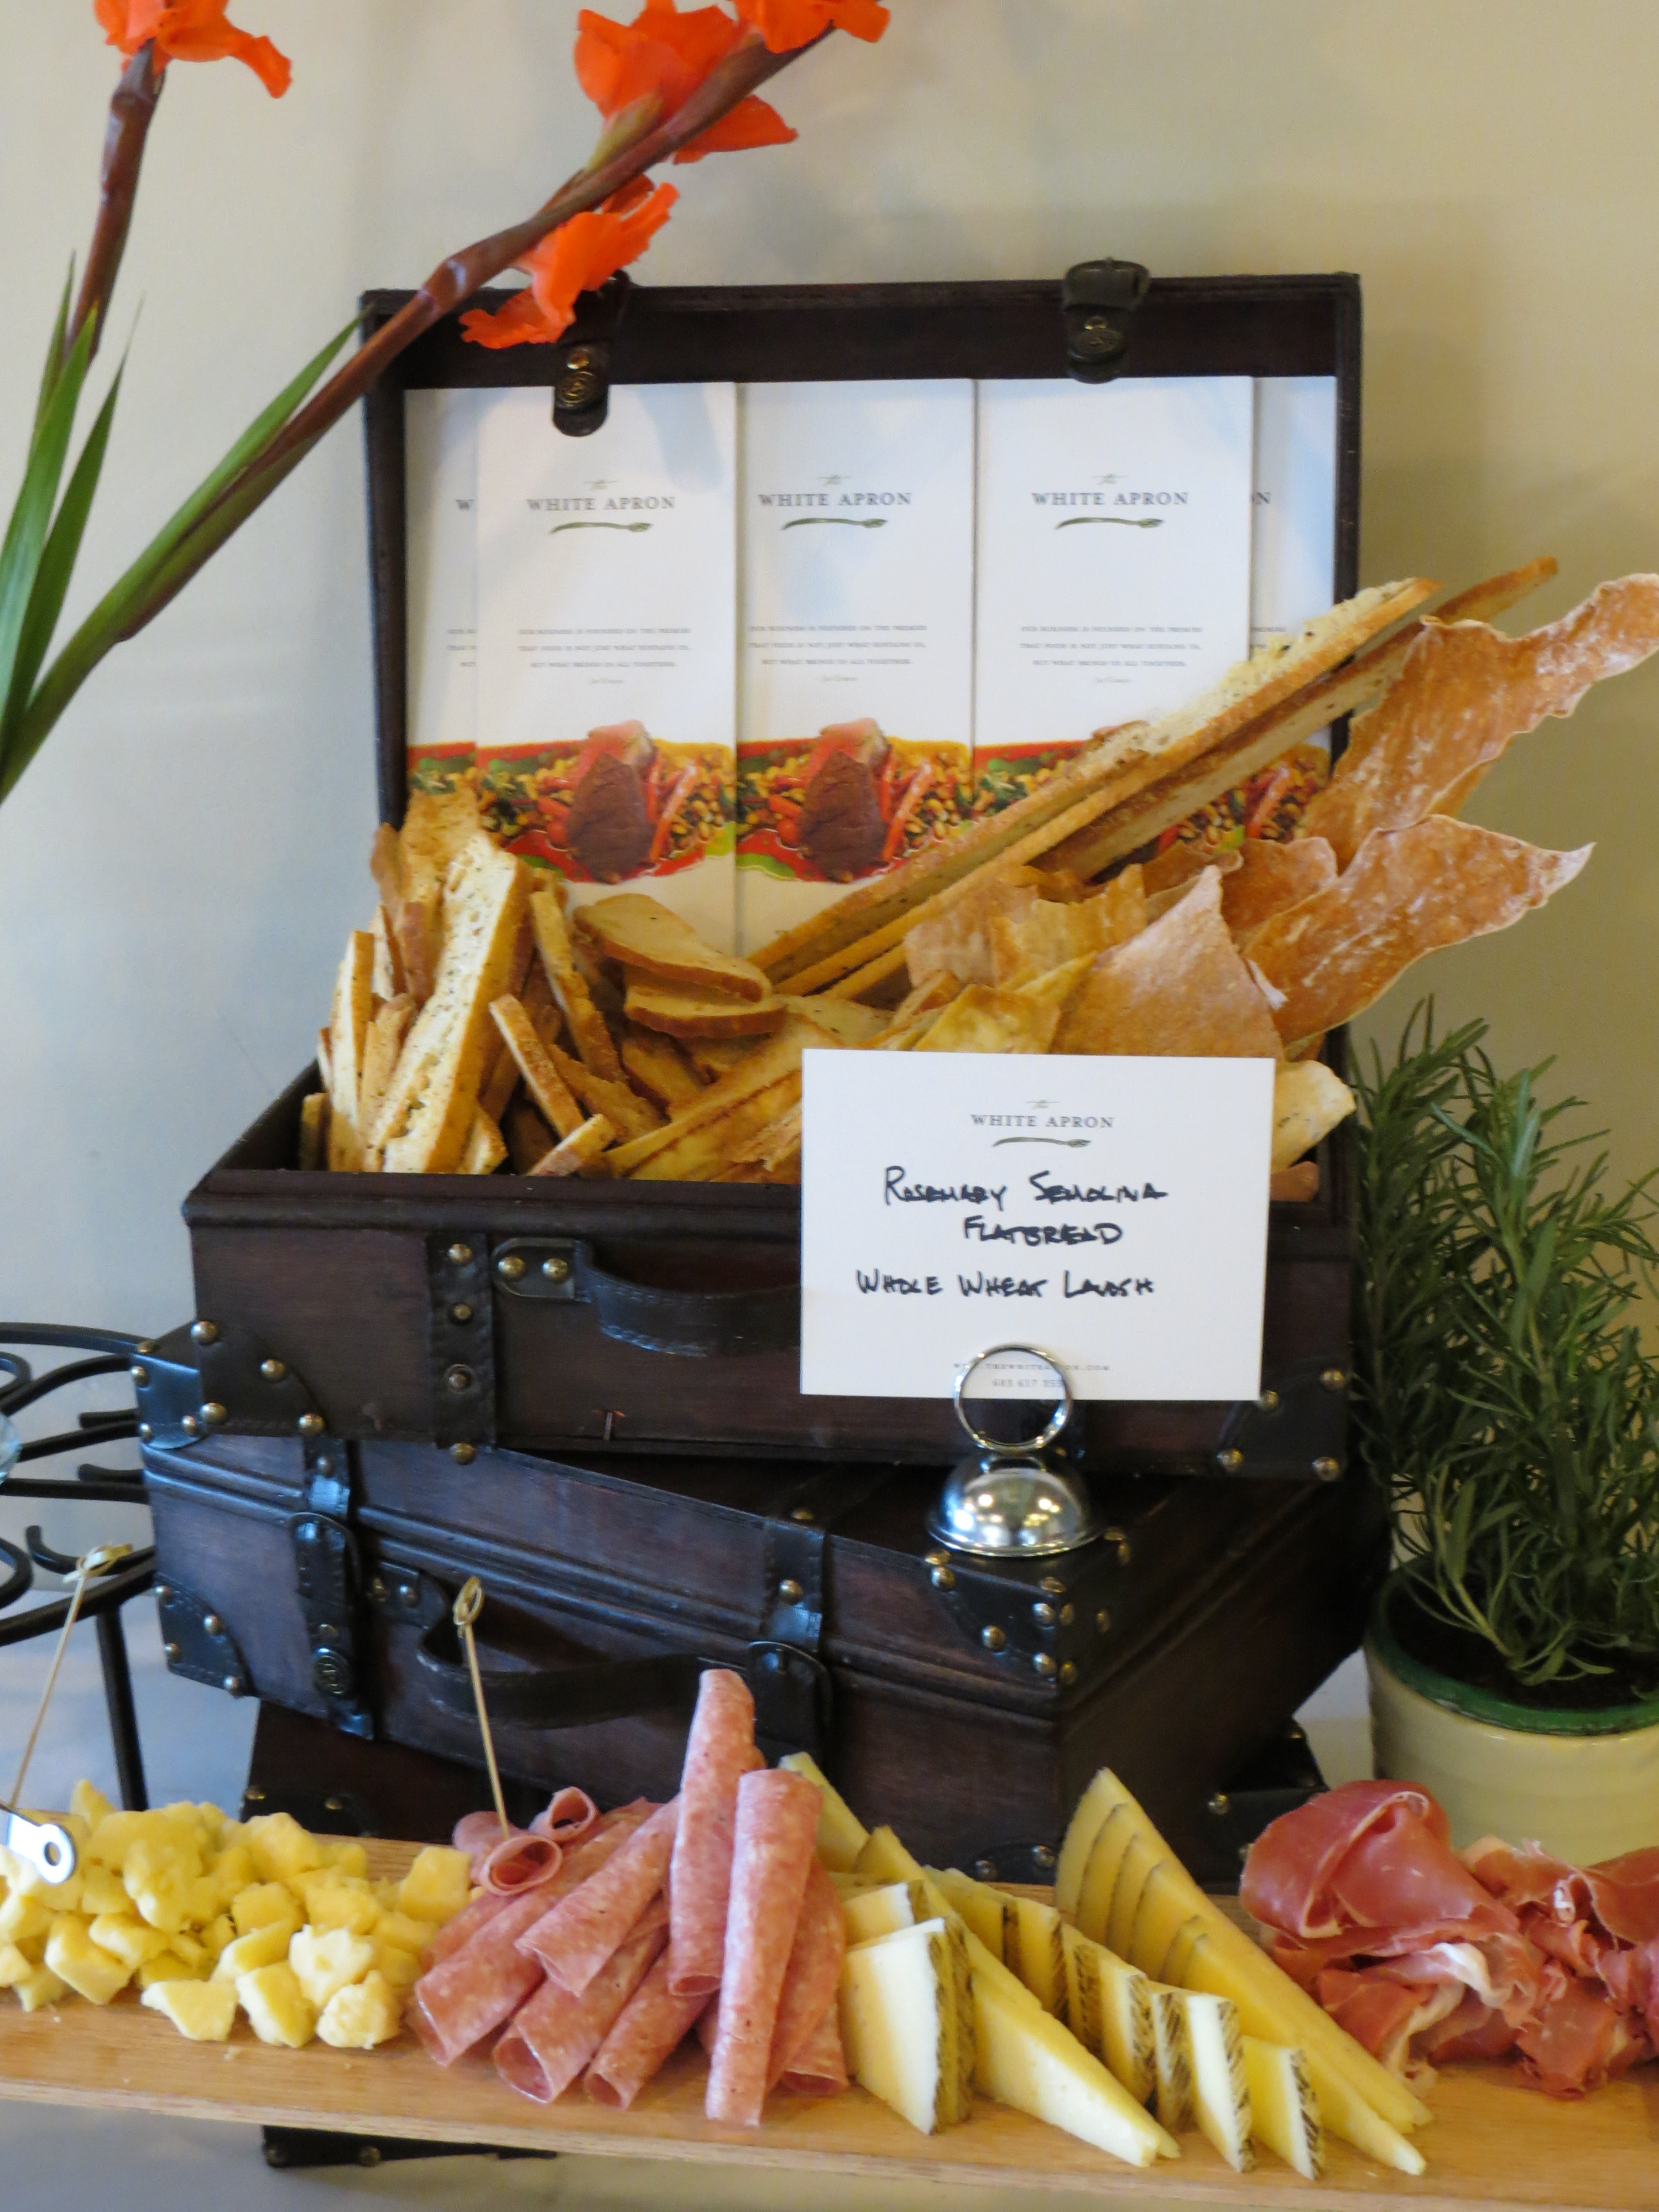 White apron cafe - Suitcase Displays Are All The Rage In Home Decor Why Not In Catering Too